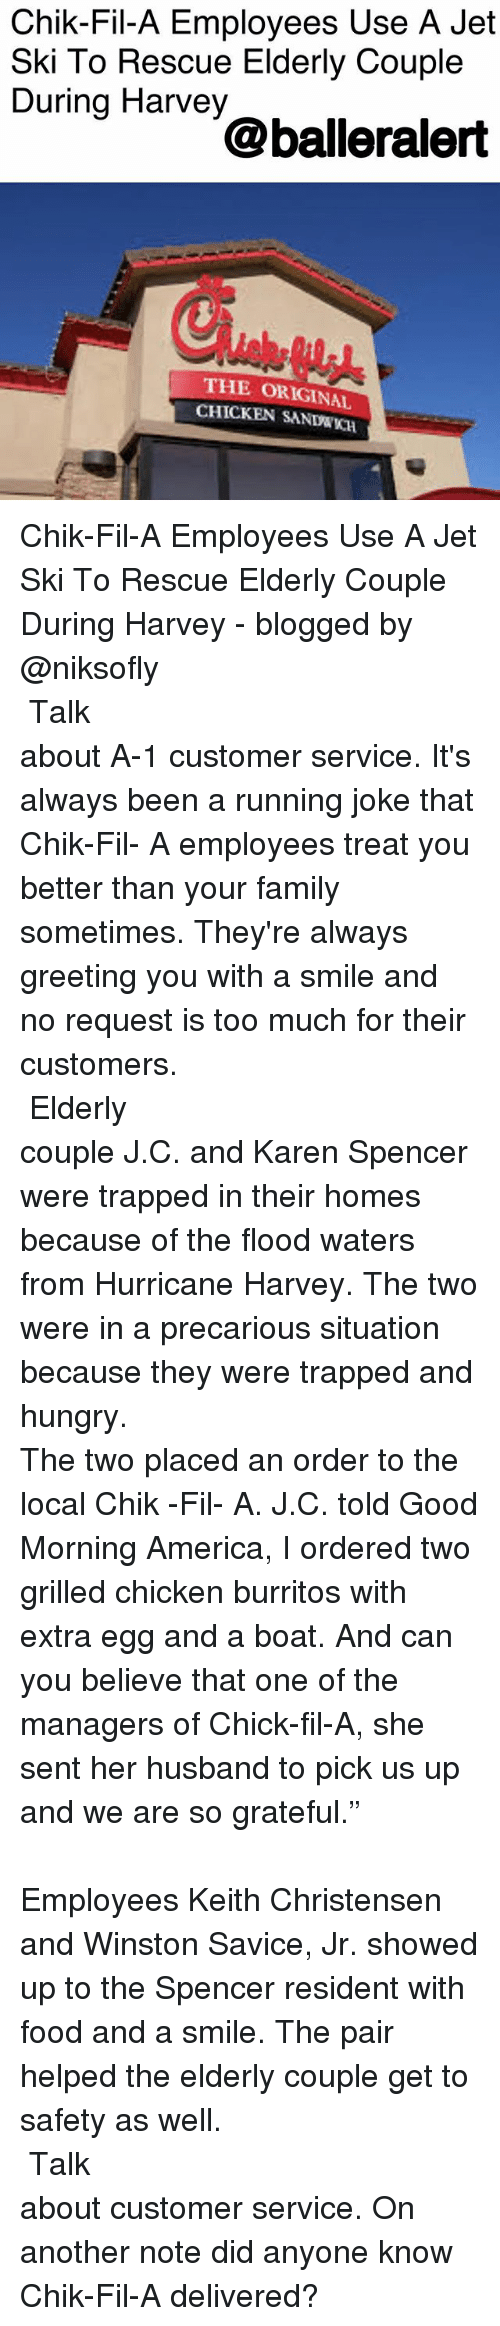 """America, Chick-Fil-A, and Family: Chik-Fil-A Employees Use A Jet  Ski To Rescue Elderly Couple  During Harvey  @balleralert  THE ORIGINAL  CHICKEN SANDWKCH Chik-Fil-A Employees Use A Jet Ski To Rescue Elderly Couple During Harvey - blogged by @niksofly ⠀⠀⠀⠀⠀⠀⠀⠀⠀⠀⠀⠀⠀⠀⠀⠀⠀⠀⠀⠀⠀⠀⠀⠀⠀⠀⠀⠀⠀⠀⠀⠀⠀⠀⠀⠀ Talk about A-1 customer service. It's always been a running joke that Chik-Fil- A employees treat you better than your family sometimes. They're always greeting you with a smile and no request is too much for their customers. ⠀⠀⠀⠀⠀⠀⠀⠀⠀⠀⠀⠀⠀⠀⠀⠀⠀⠀⠀⠀⠀⠀⠀⠀⠀⠀⠀⠀⠀⠀⠀⠀⠀⠀⠀⠀ Elderly couple J.C. and Karen Spencer were trapped in their homes because of the flood waters from Hurricane Harvey. The two were in a precarious situation because they were trapped and hungry. ⠀⠀⠀⠀⠀⠀⠀⠀⠀⠀⠀⠀⠀⠀⠀⠀⠀⠀⠀⠀⠀⠀⠀⠀⠀⠀⠀⠀⠀⠀⠀⠀⠀⠀⠀⠀ The two placed an order to the local Chik -Fil- A. J.C. told Good Morning America, I ordered two grilled chicken burritos with extra egg and a boat. And can you believe that one of the managers of Chick-fil-A, she sent her husband to pick us up and we are so grateful."""" ⠀⠀⠀⠀⠀⠀⠀⠀⠀⠀⠀⠀⠀⠀⠀⠀⠀⠀⠀⠀⠀⠀⠀⠀⠀⠀⠀⠀⠀⠀⠀⠀⠀⠀⠀⠀ Employees Keith Christensen and Winston Savice, Jr. showed up to the Spencer resident with food and a smile. The pair helped the elderly couple get to safety as well. ⠀⠀⠀⠀⠀⠀⠀⠀⠀⠀⠀⠀⠀⠀⠀⠀⠀⠀⠀⠀⠀⠀⠀⠀⠀⠀⠀⠀⠀⠀⠀⠀⠀⠀⠀⠀ Talk about customer service. On another note did anyone know Chik-Fil-A delivered?"""